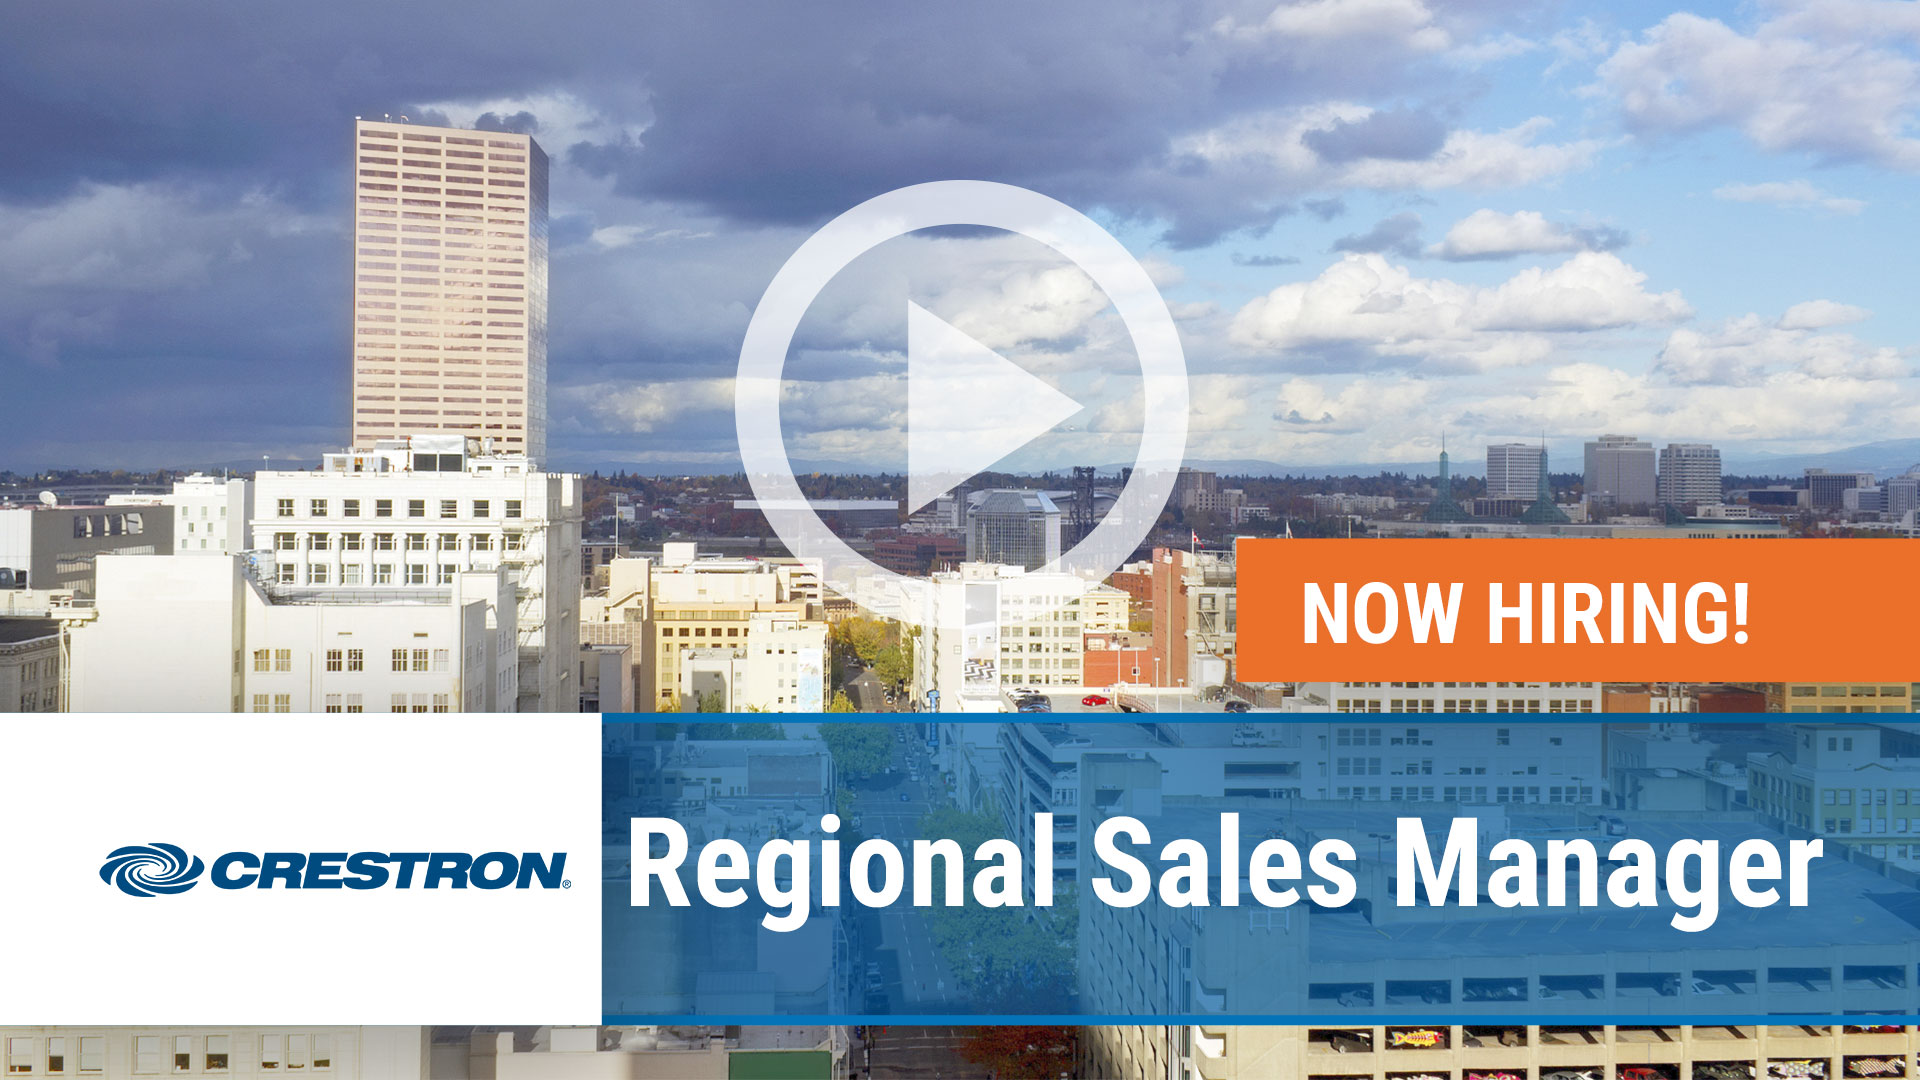 Watch our careers video for available job opening Regional Sales Manager in Rockleigh, NJ West Hollywood, CA Schaumburg, IL